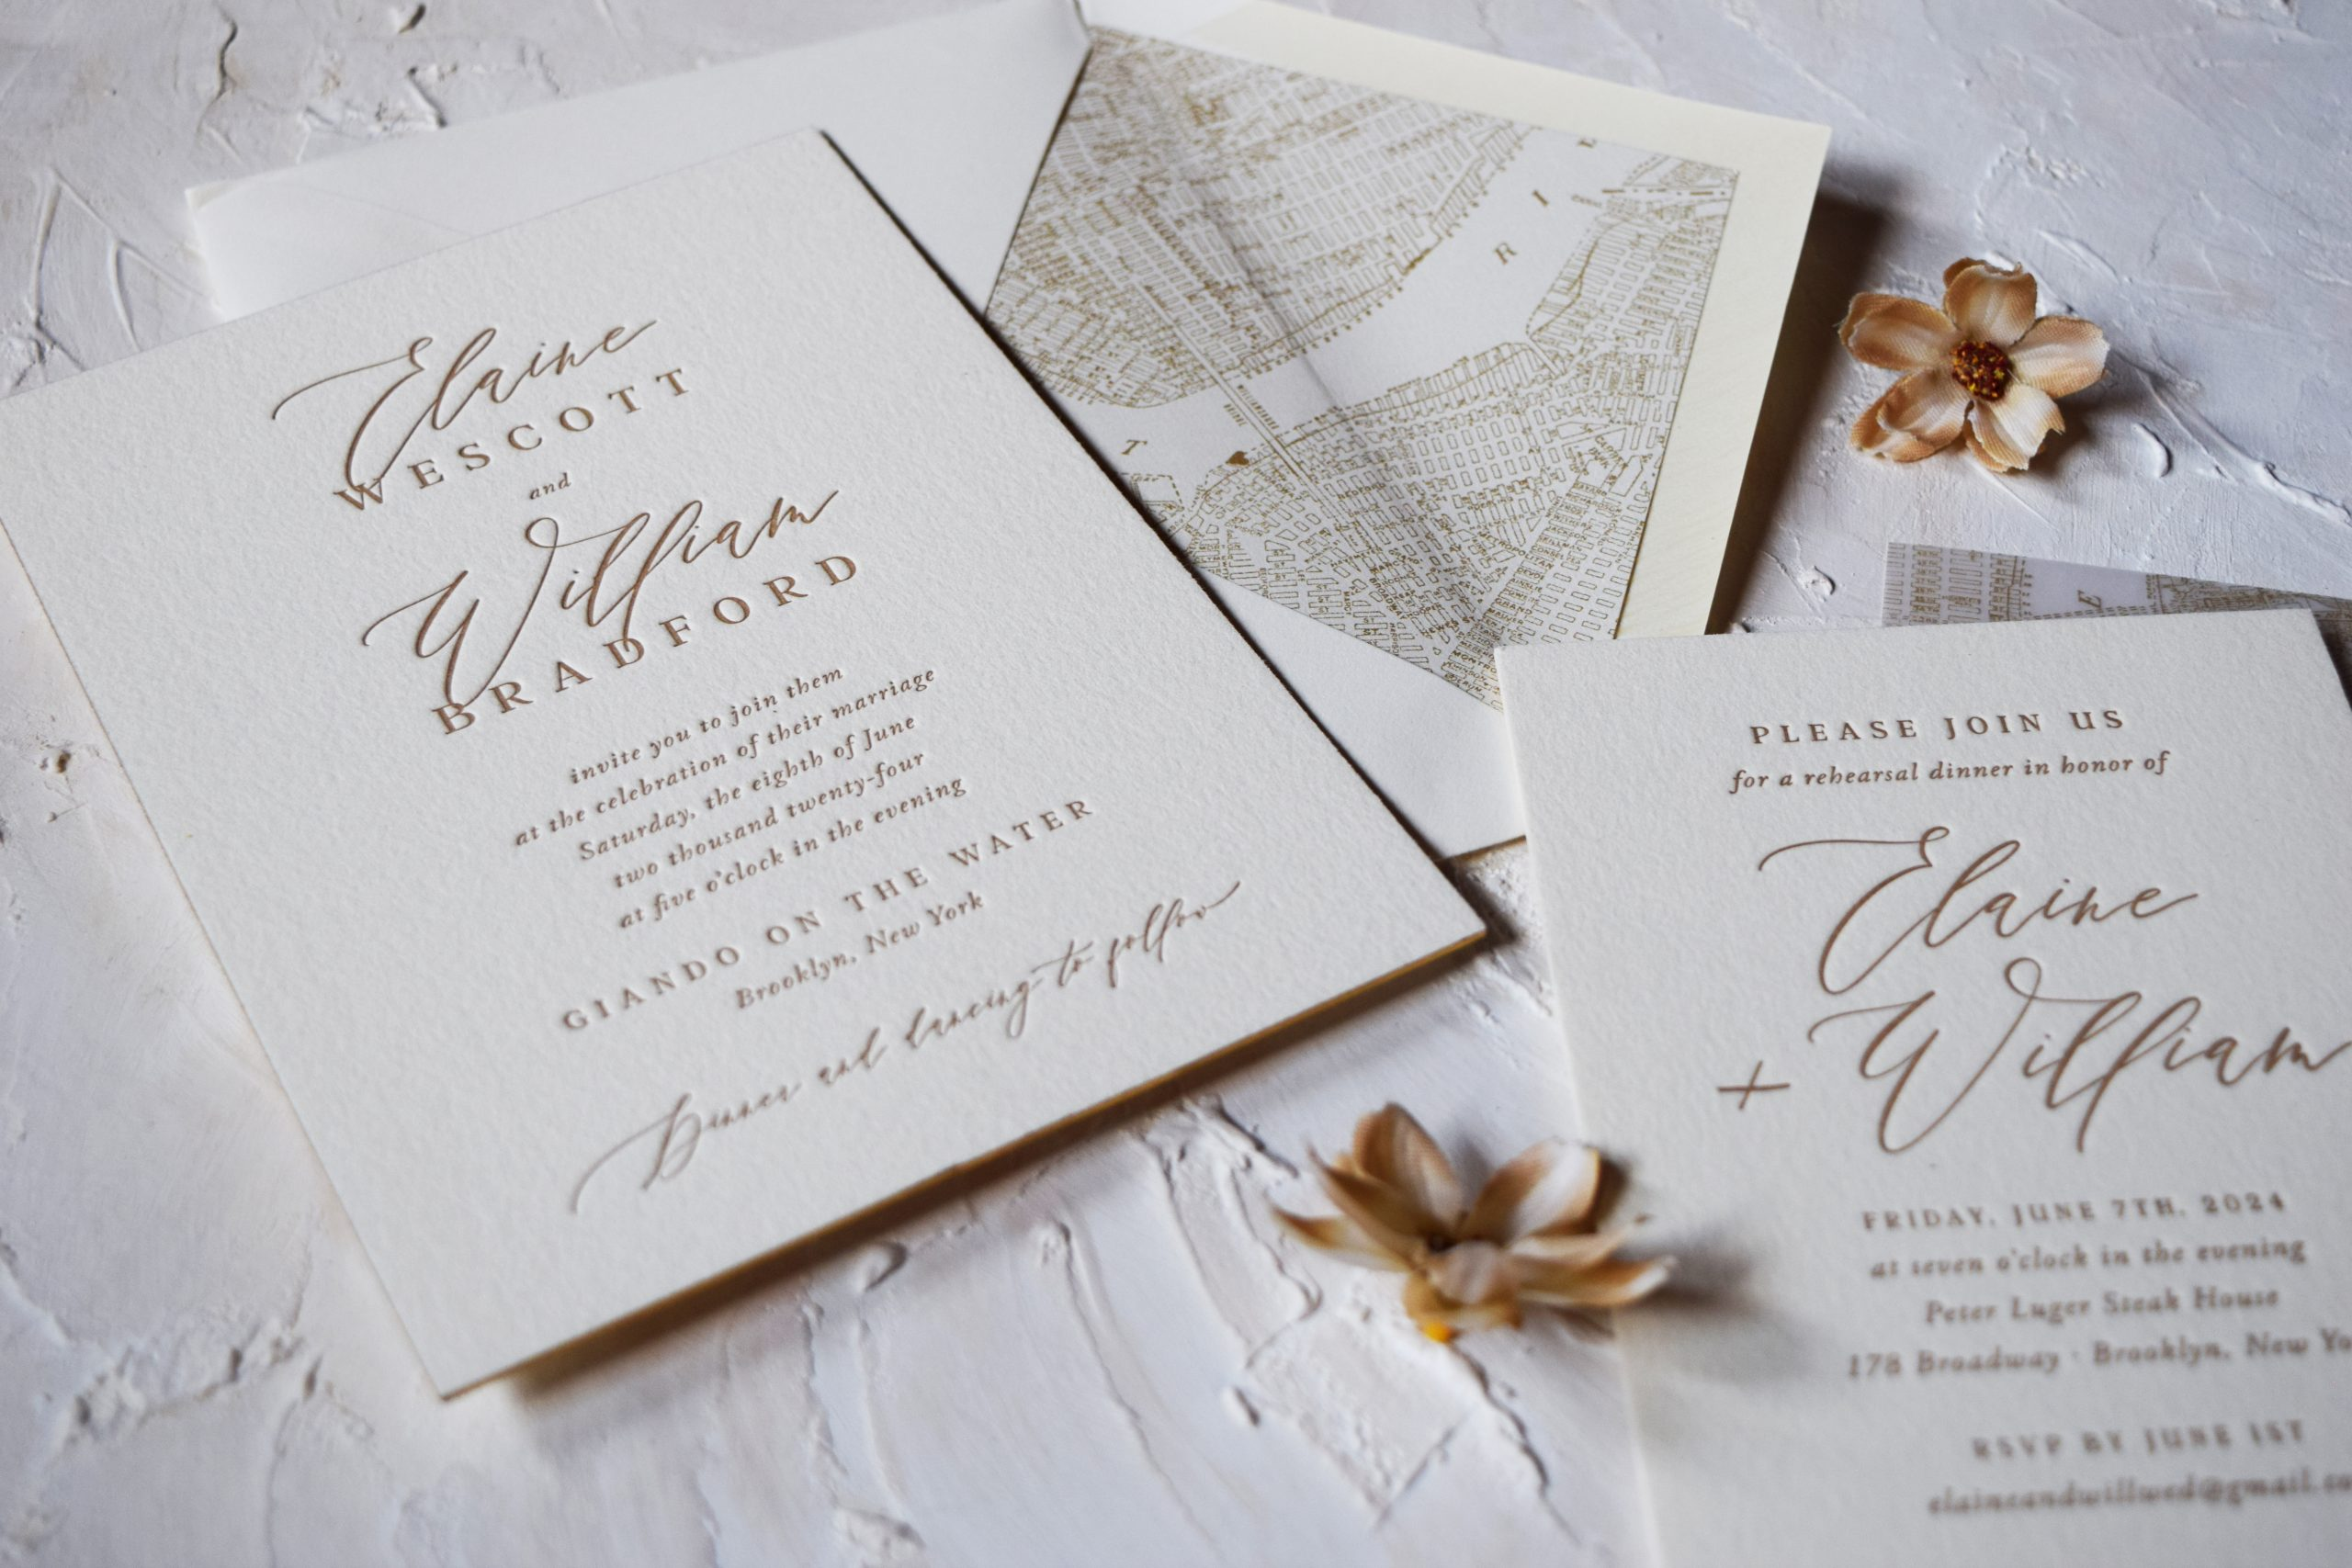 Wedding invitation etiquette advice during COVID-19